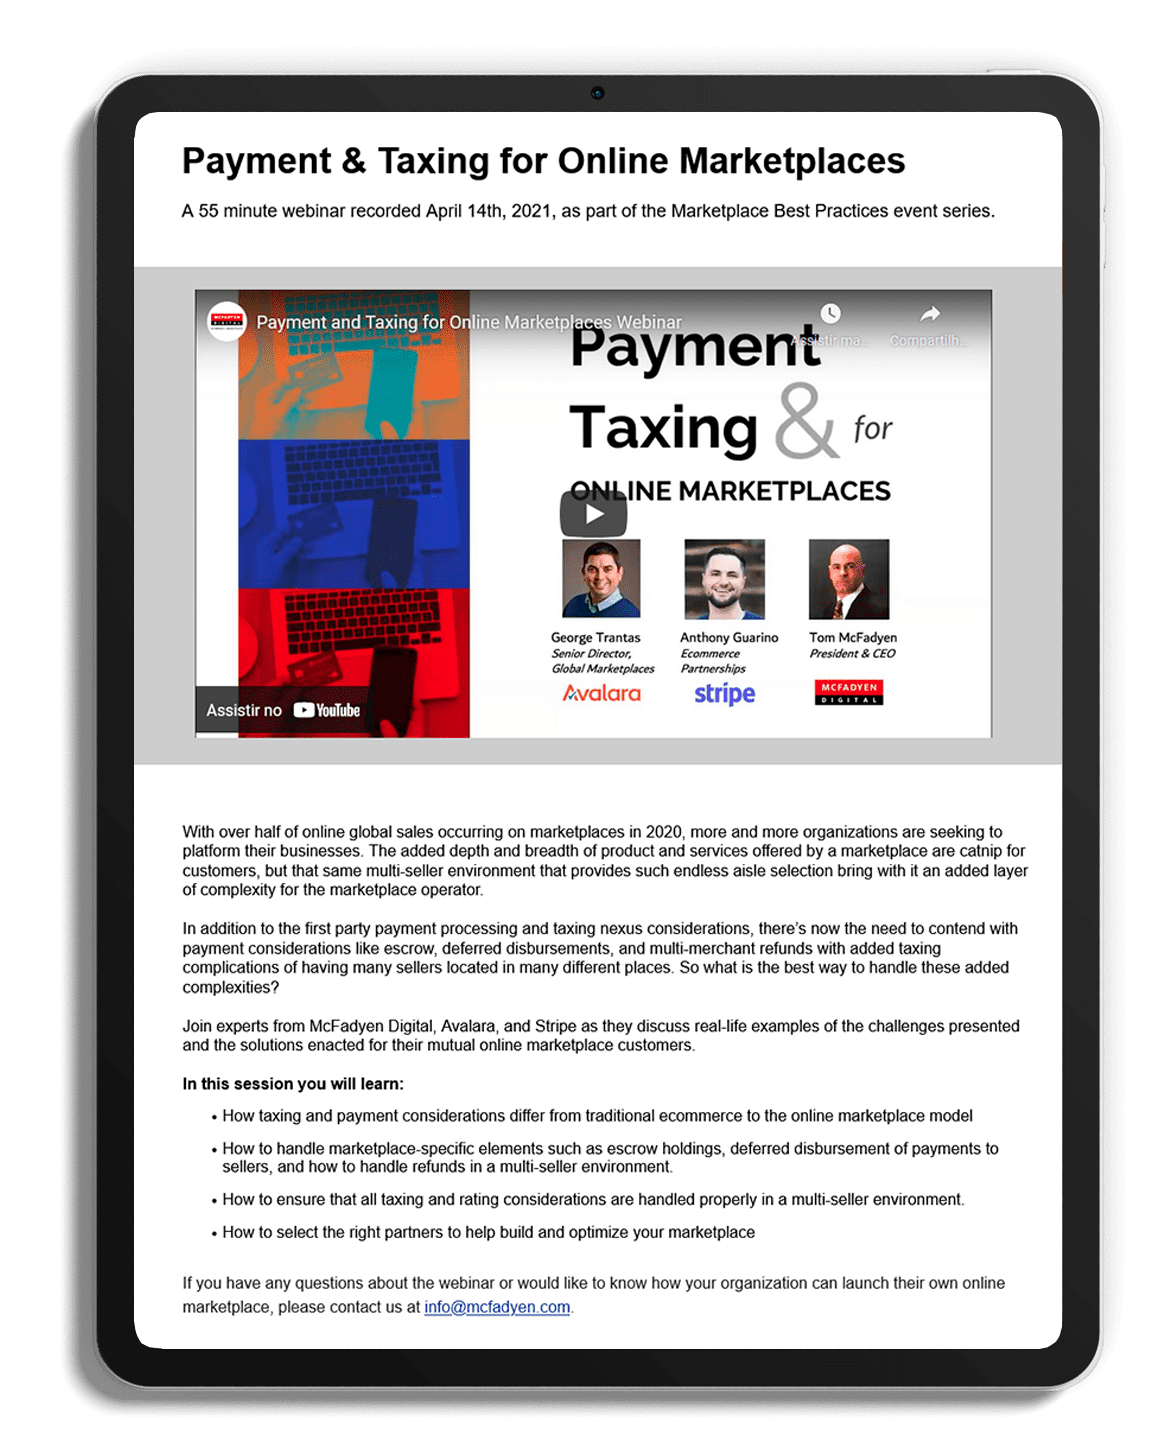 Payment & Tax for Online Marketplaces